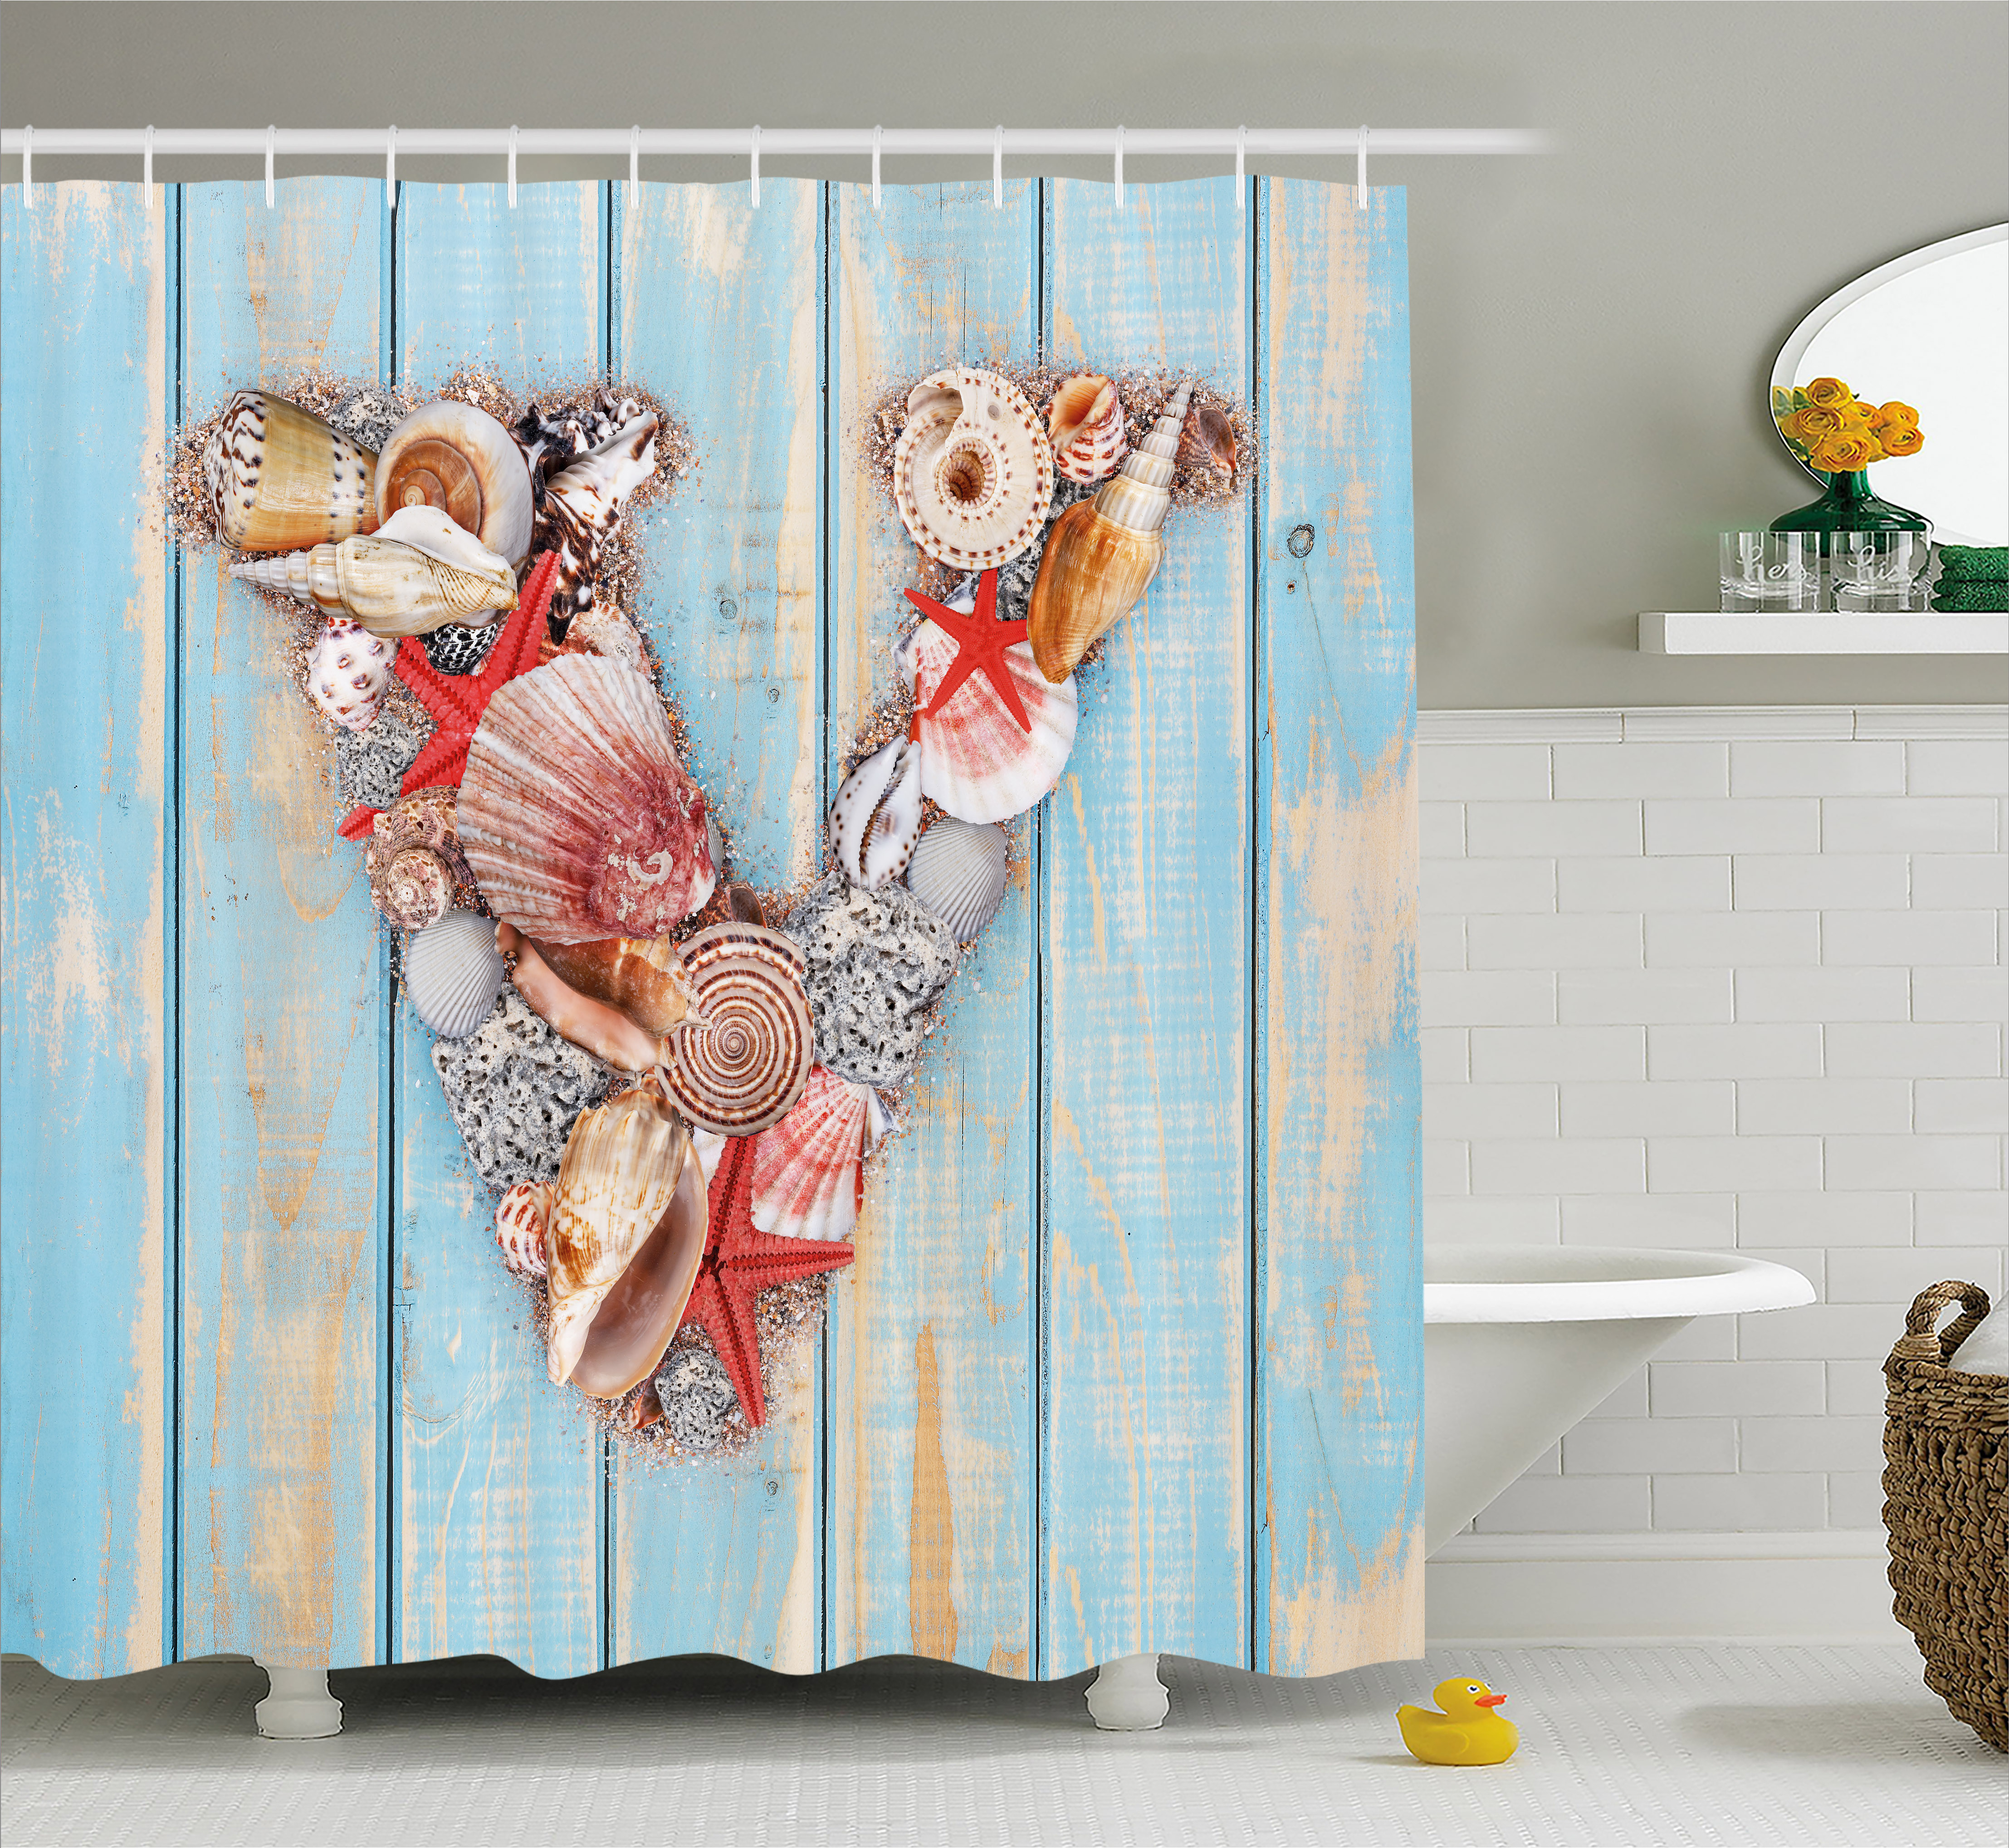 Letter V Shower Curtain, Nautical ABC with Beach Inspired Coastal Oceanic Marine Elements, Fabric Bathroom Set with Hooks, 69W X 70L Inches, Pale Blue Ivory Dark Coral, by Ambesonne